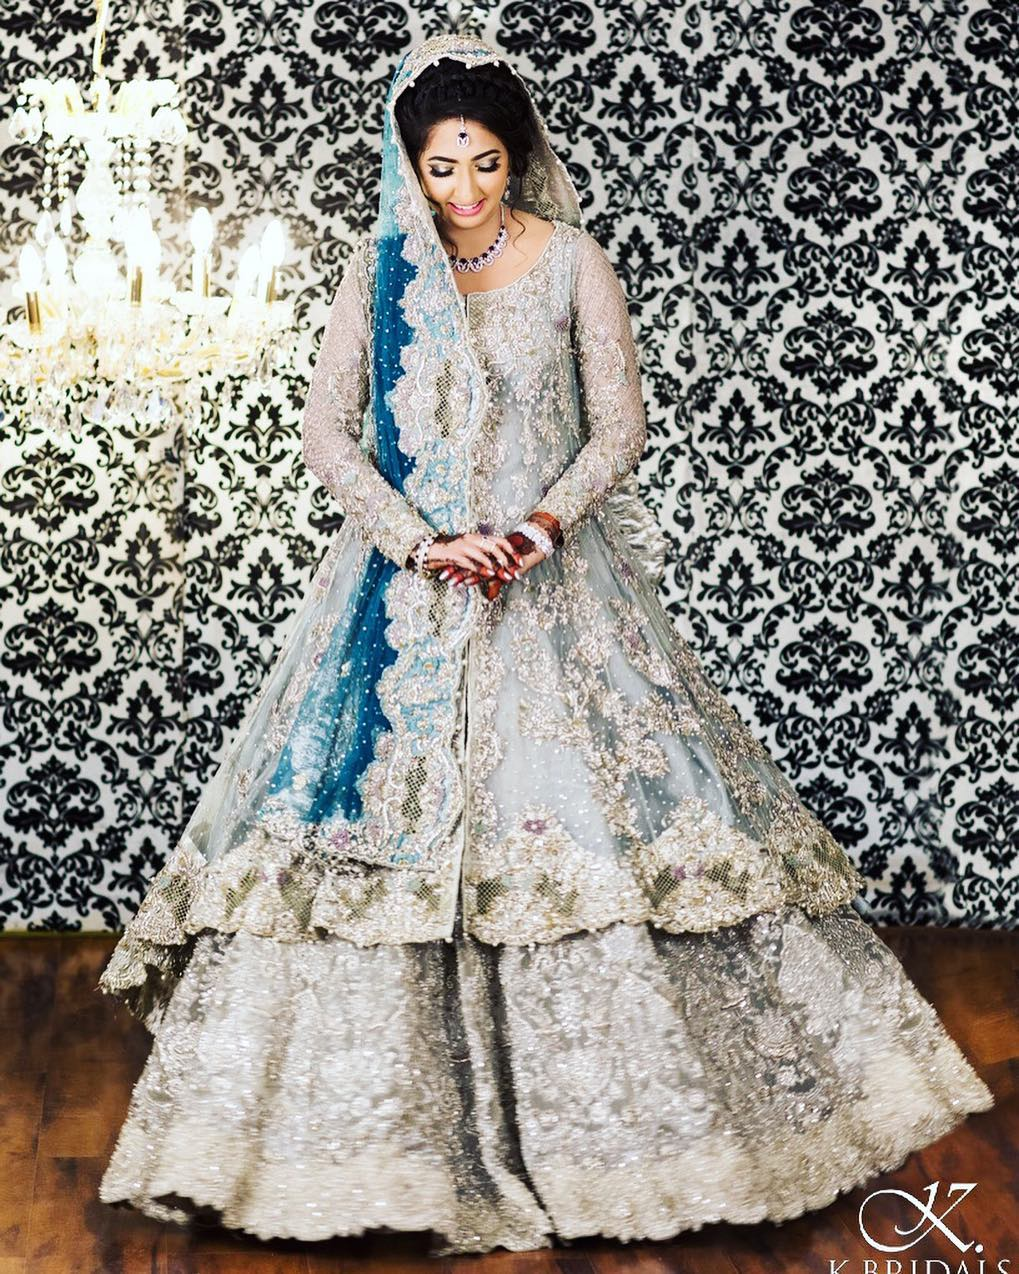 ed63e88460 ... wedding lehengas. Yet this bride makes us believe why it's the correct  choice. The front slit open long kurta with a skirt and the intricate  detailing ...